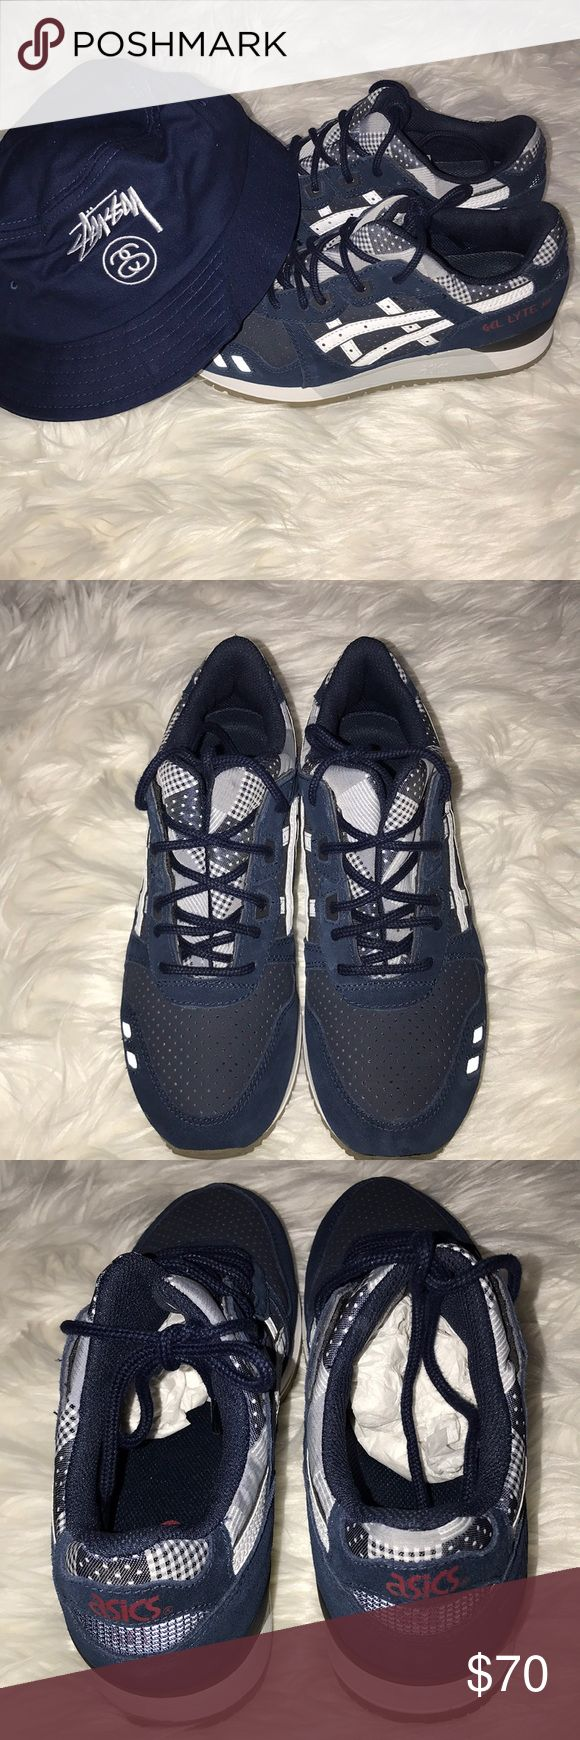 Wmn's Ascis Gel-Lyte lll Sz 8 EUC. Worn a couple of times but no flaws!! Hat for sale if interested Asics Shoes Sneakers